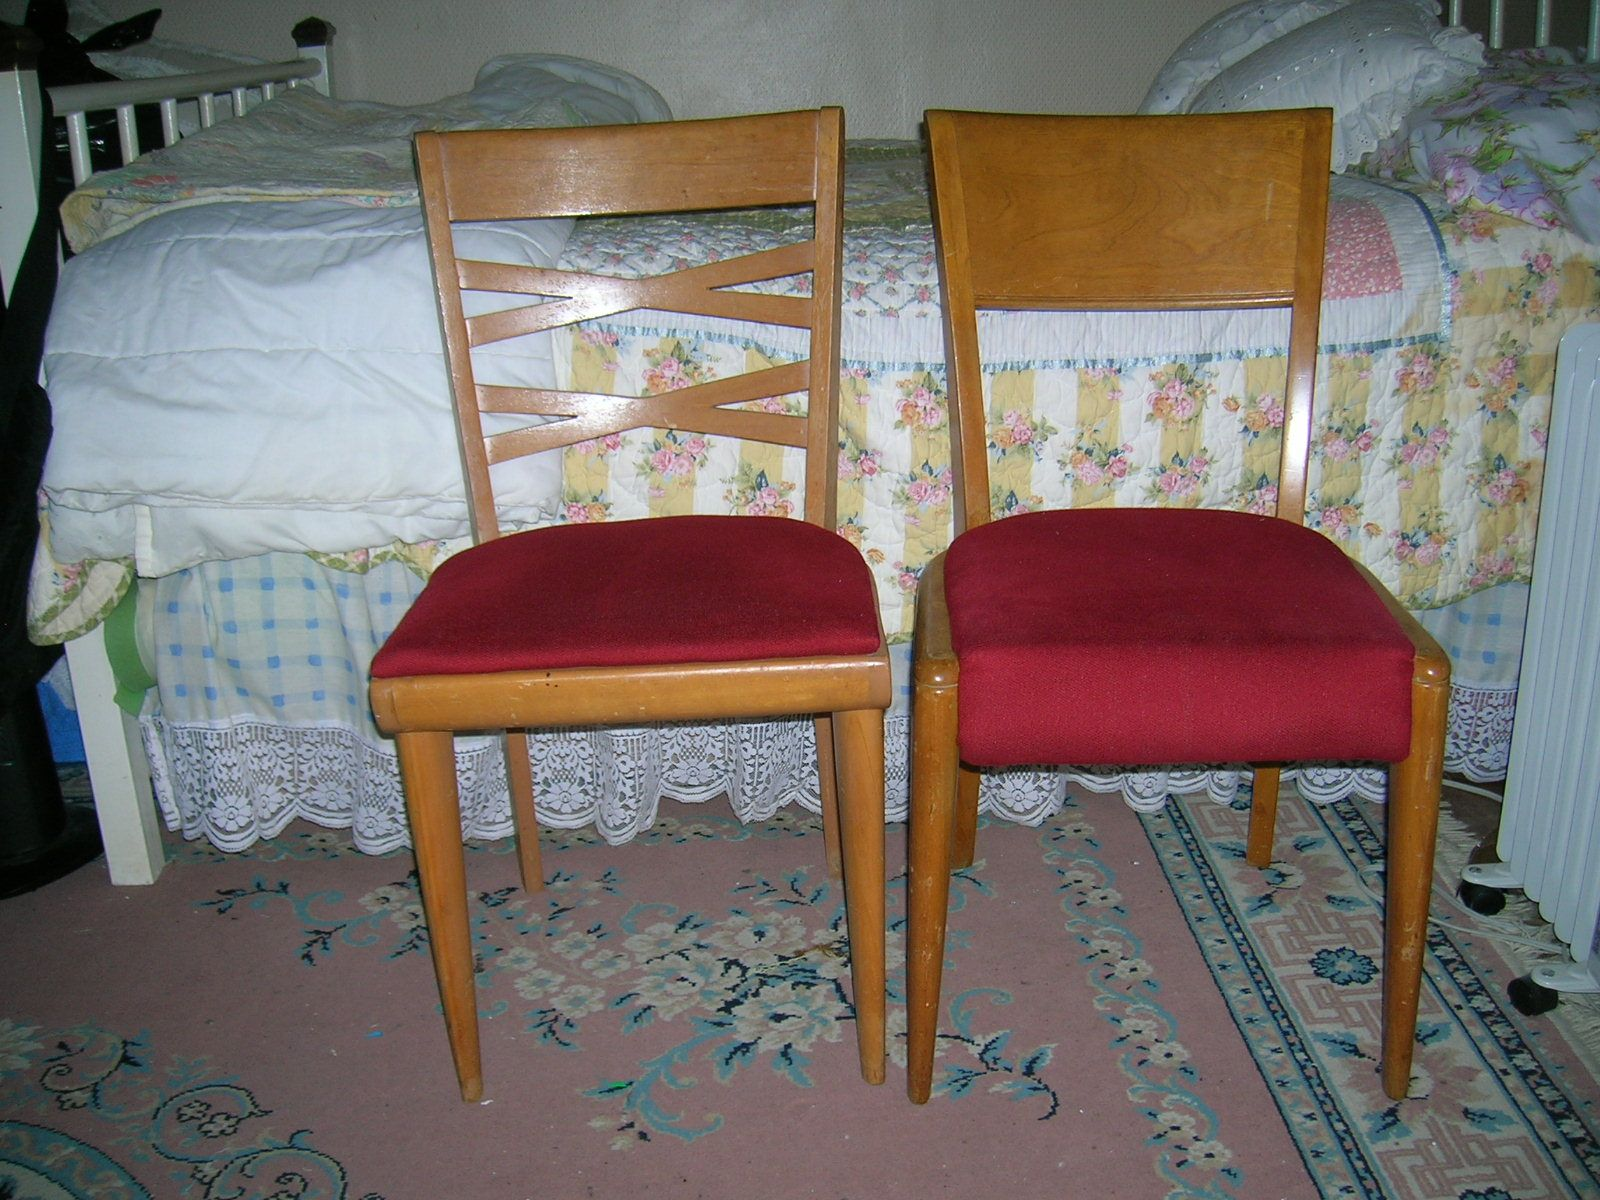 These are my Heywood Wakefield chairs, the left has the logo on the chair, after research the right chair is probably an earlier chair that had the paper tag.  Both are tight and sturdy chairs.  I will give to my girls, or sell to someone who will love them.